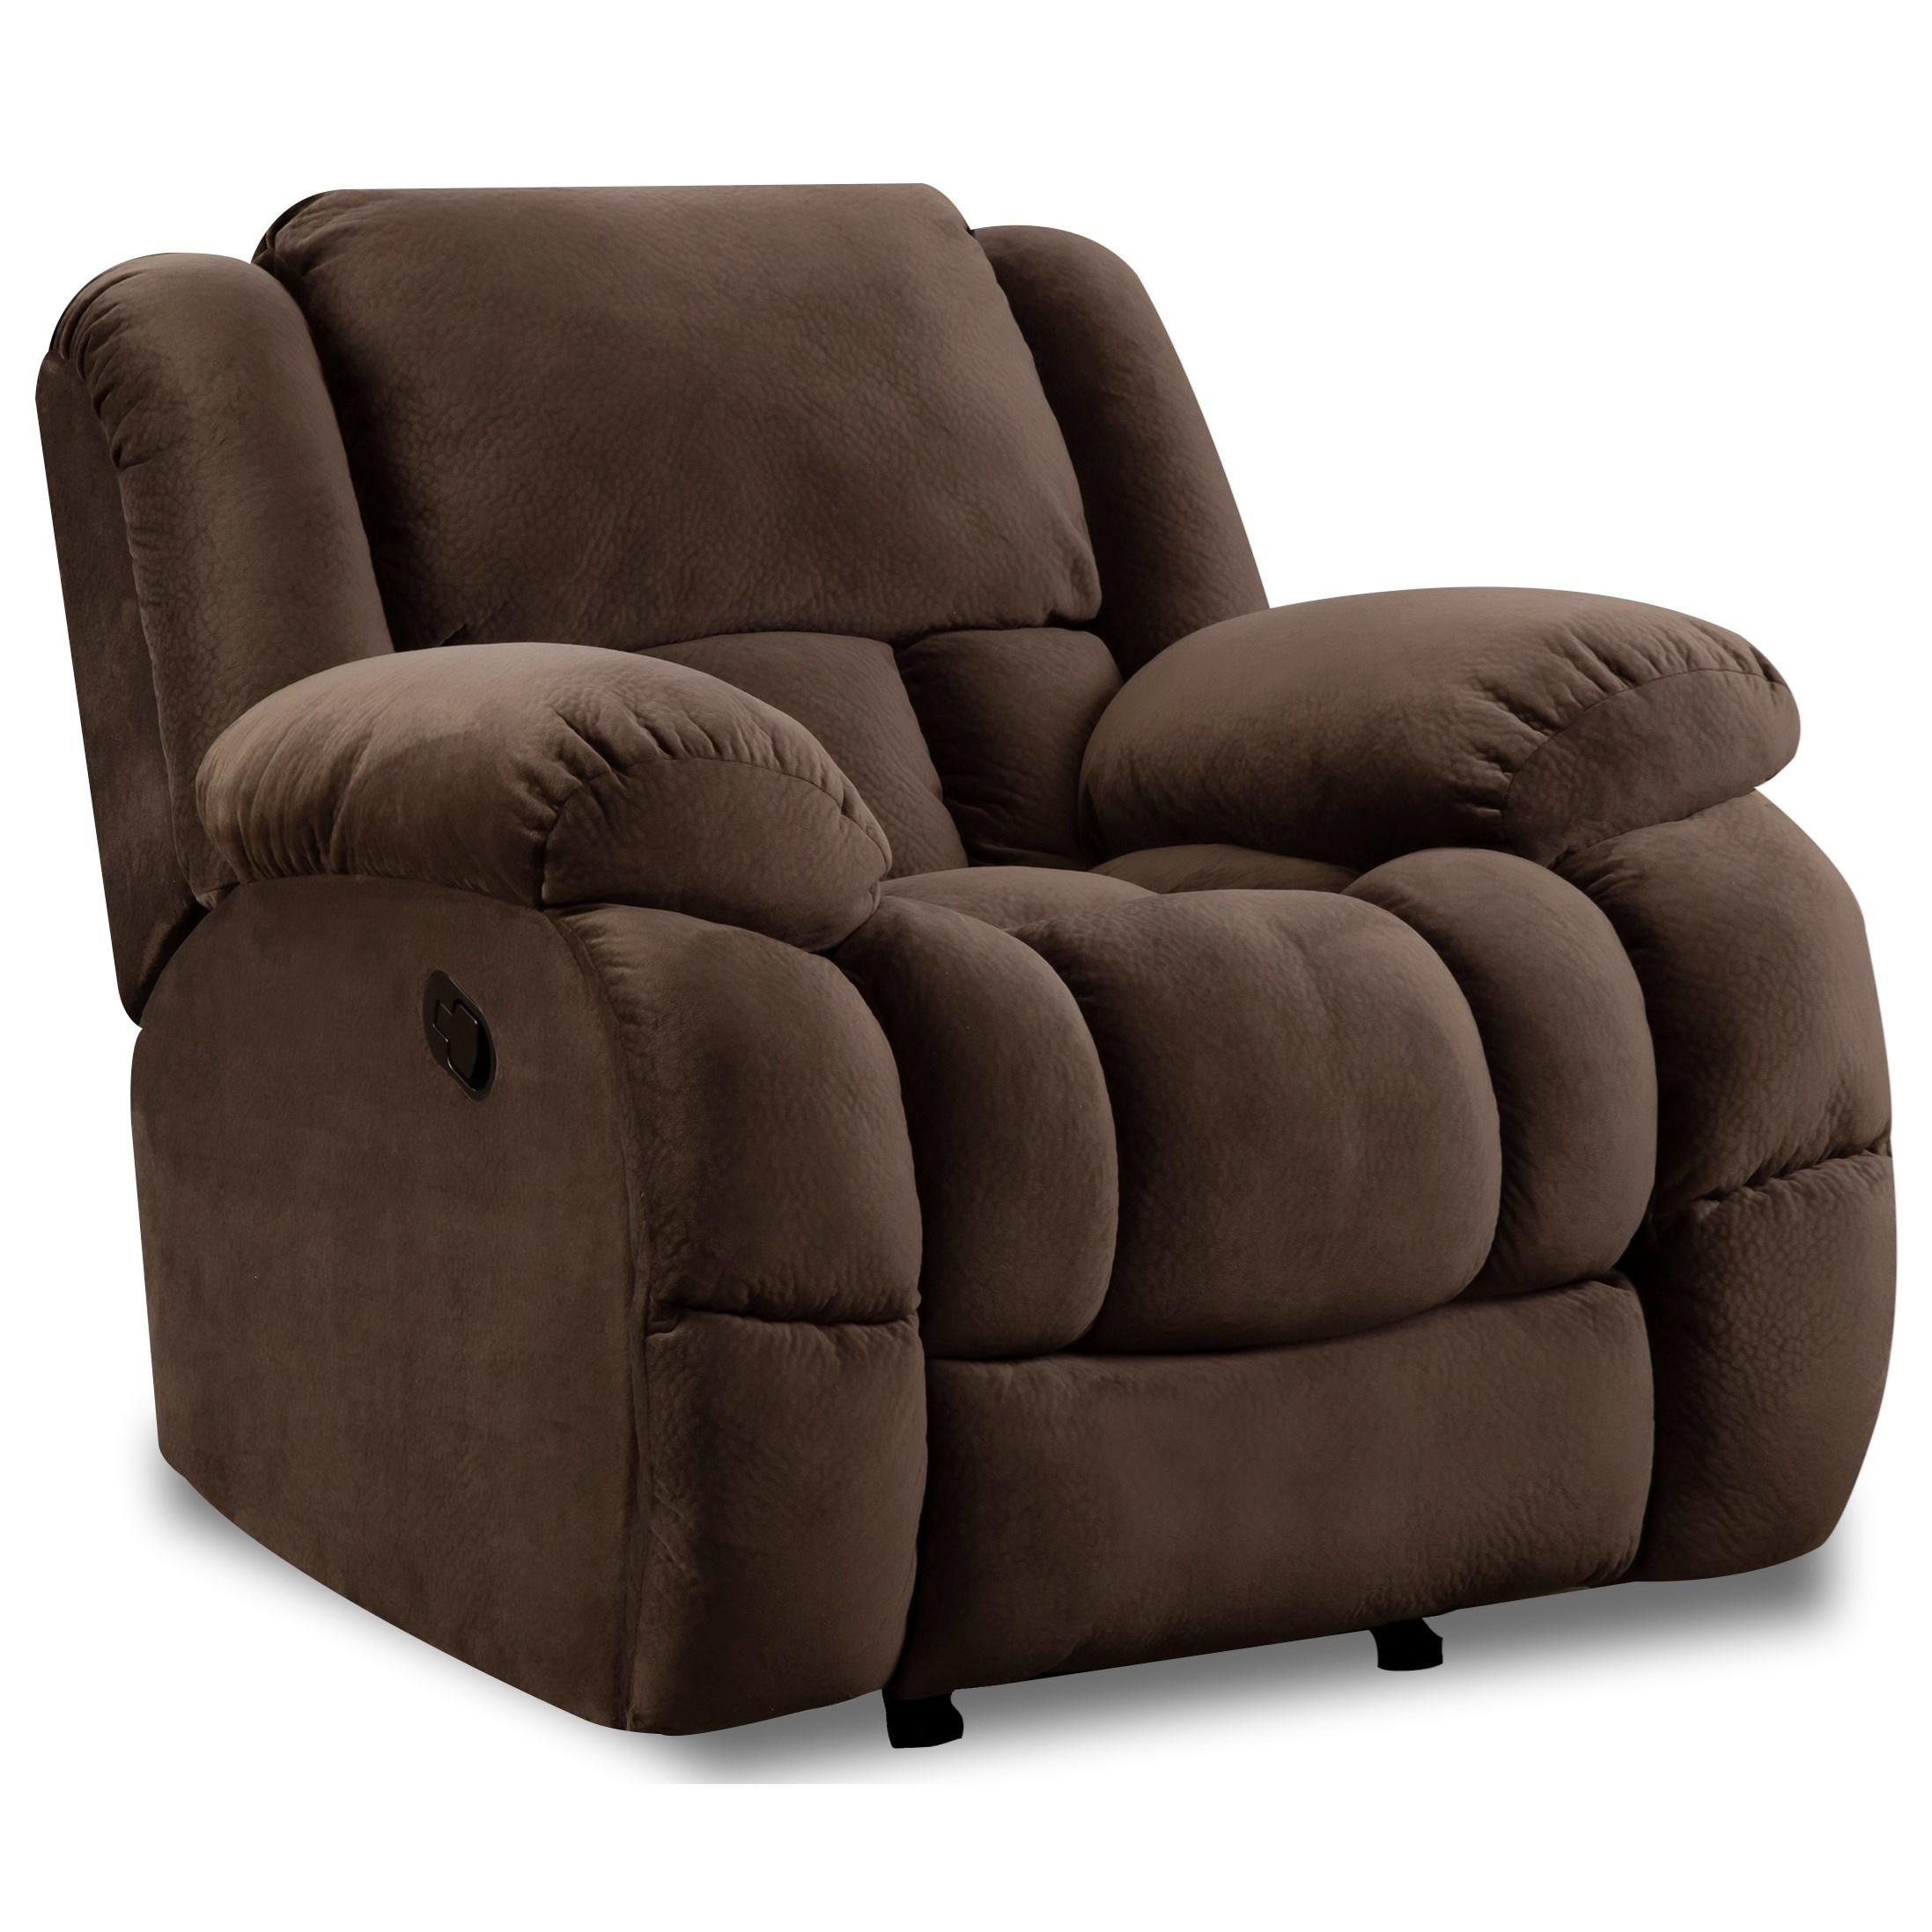 29901 Glider Recliner by Corinthian at Story & Lee Furniture